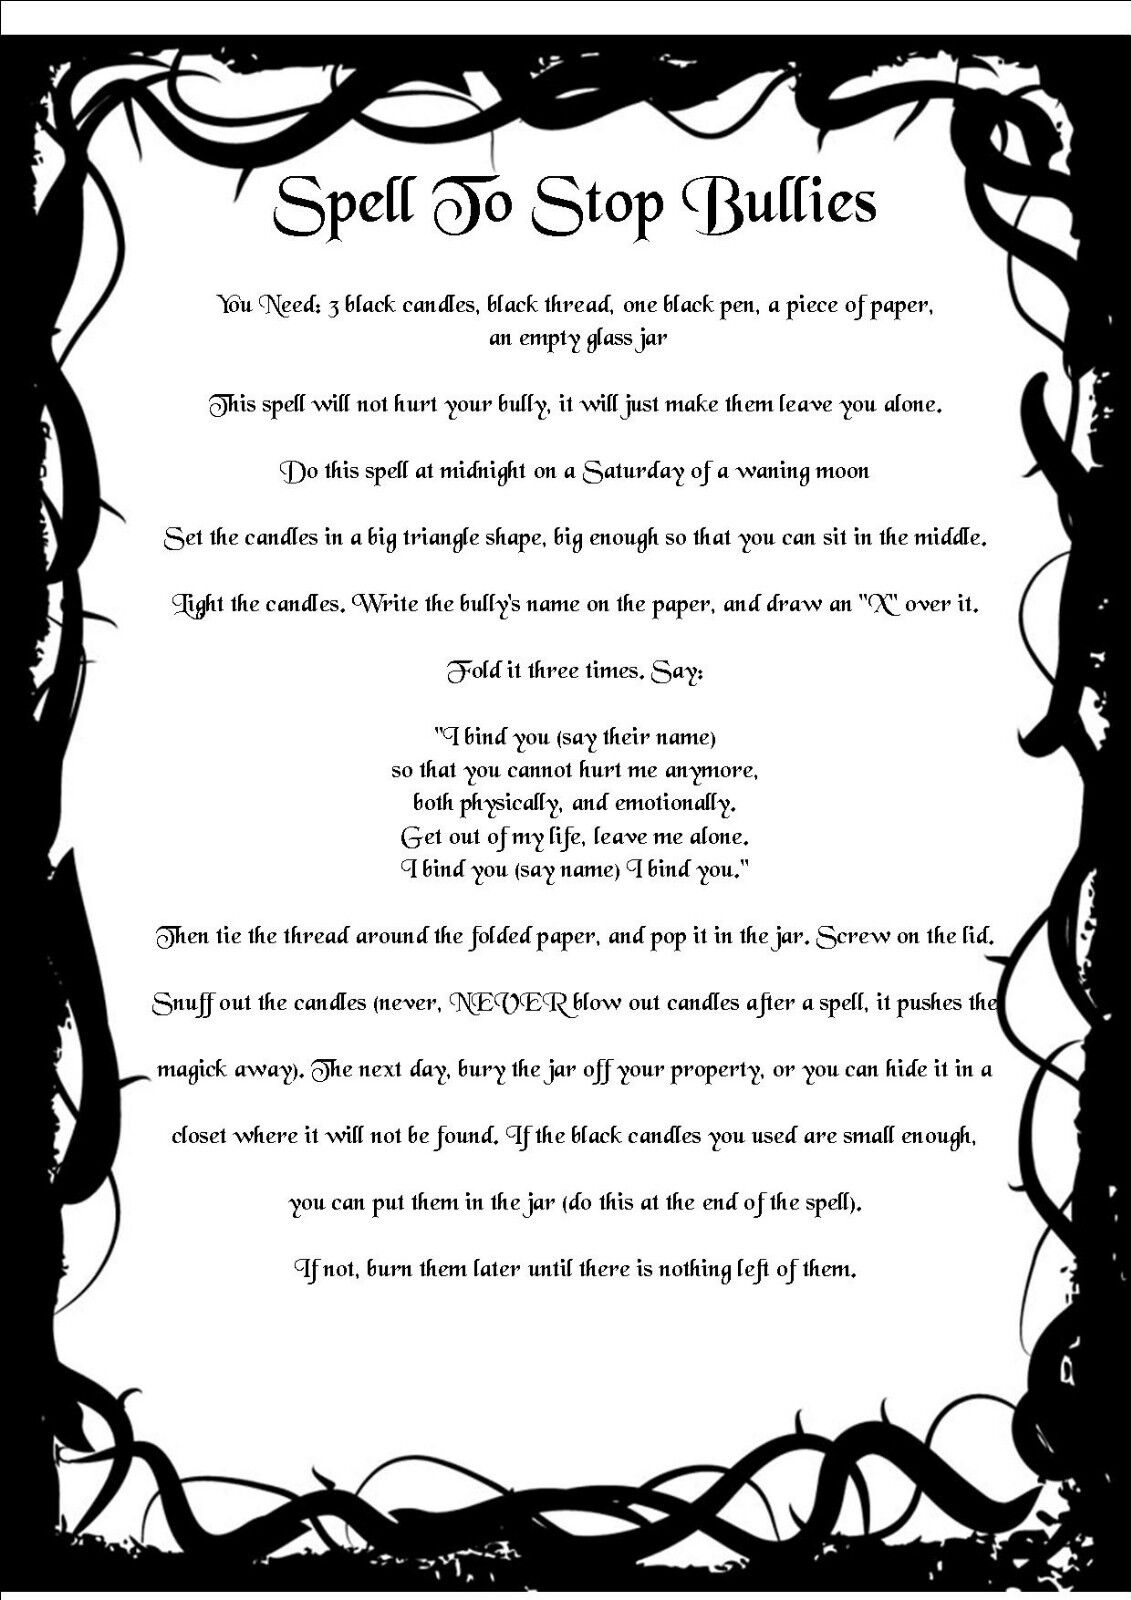 photo regarding Printable Spell Book Pages titled Reserve Of Shadow - 800+ Printable Internet pages Of Spells, Rituals